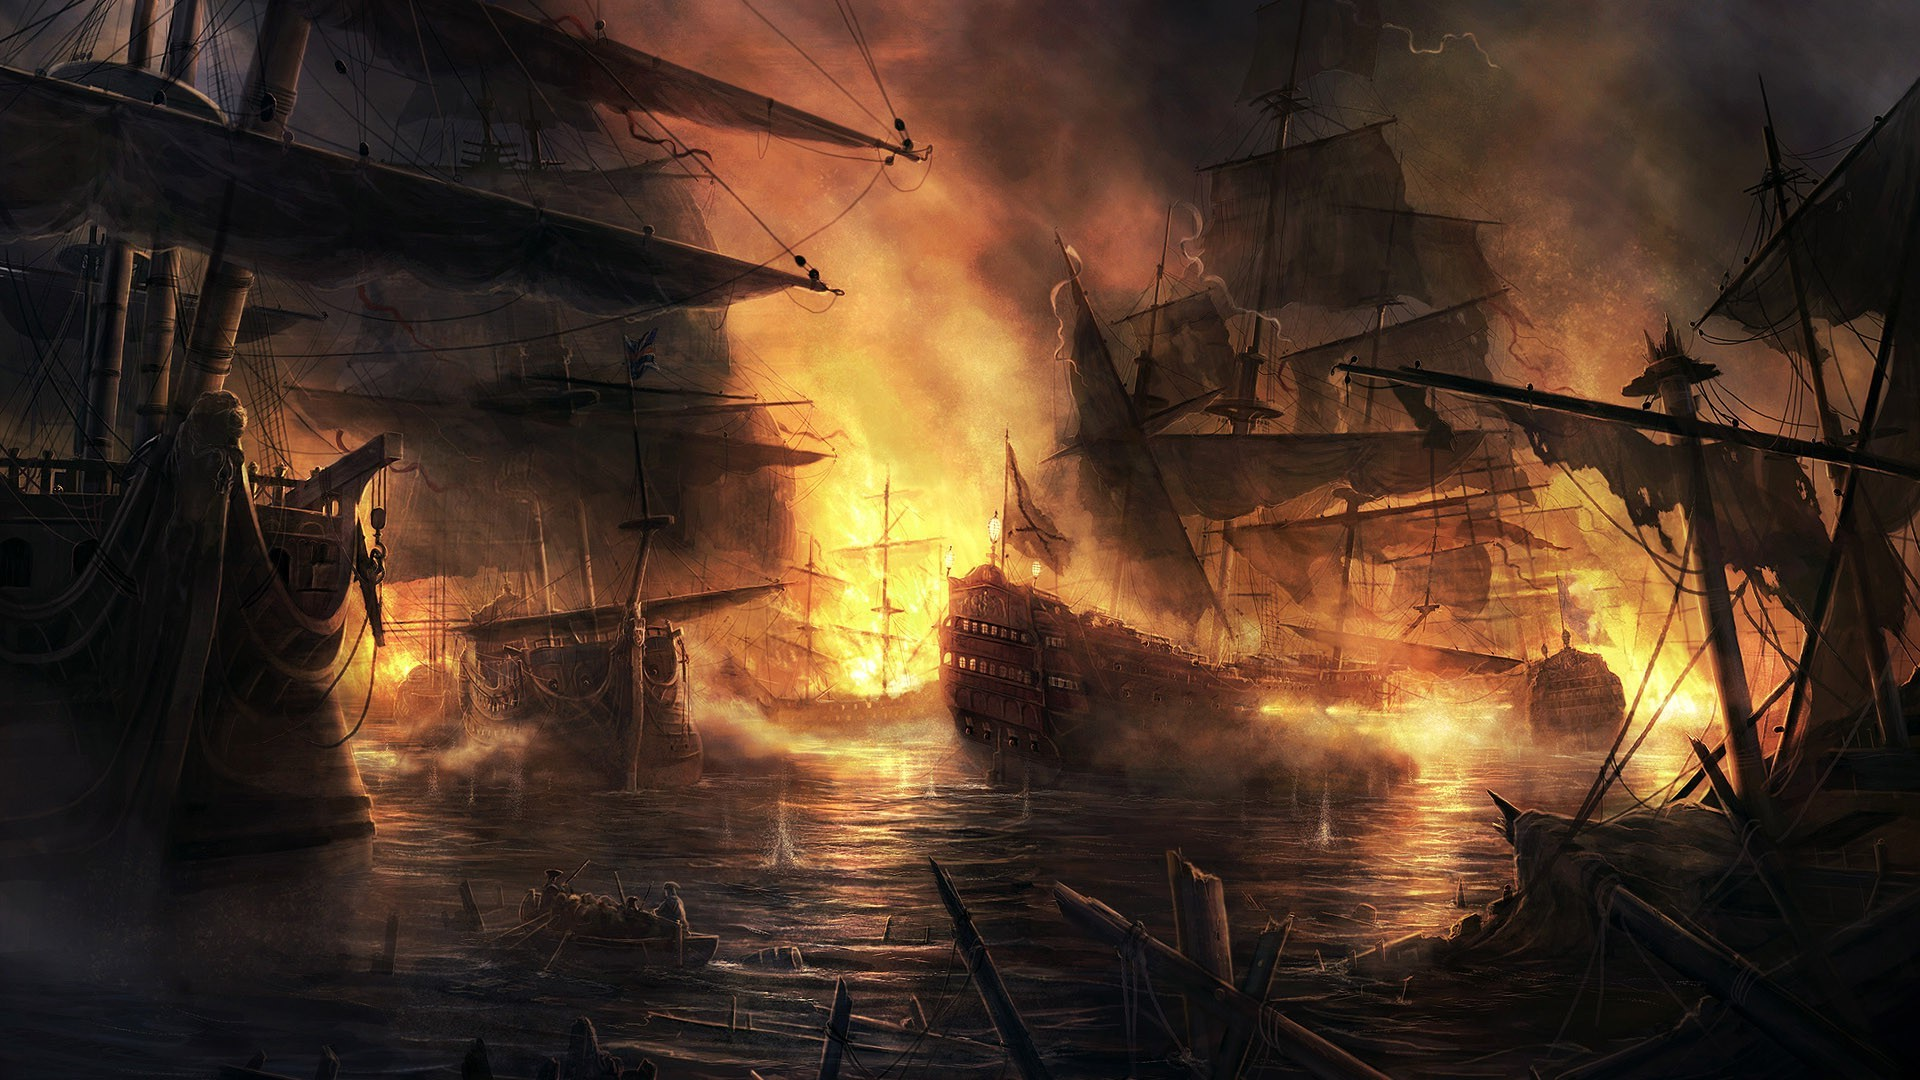 Epic Animal Wallpapers Sailing Ship Fire Smoke Cannons Armada Empire Total